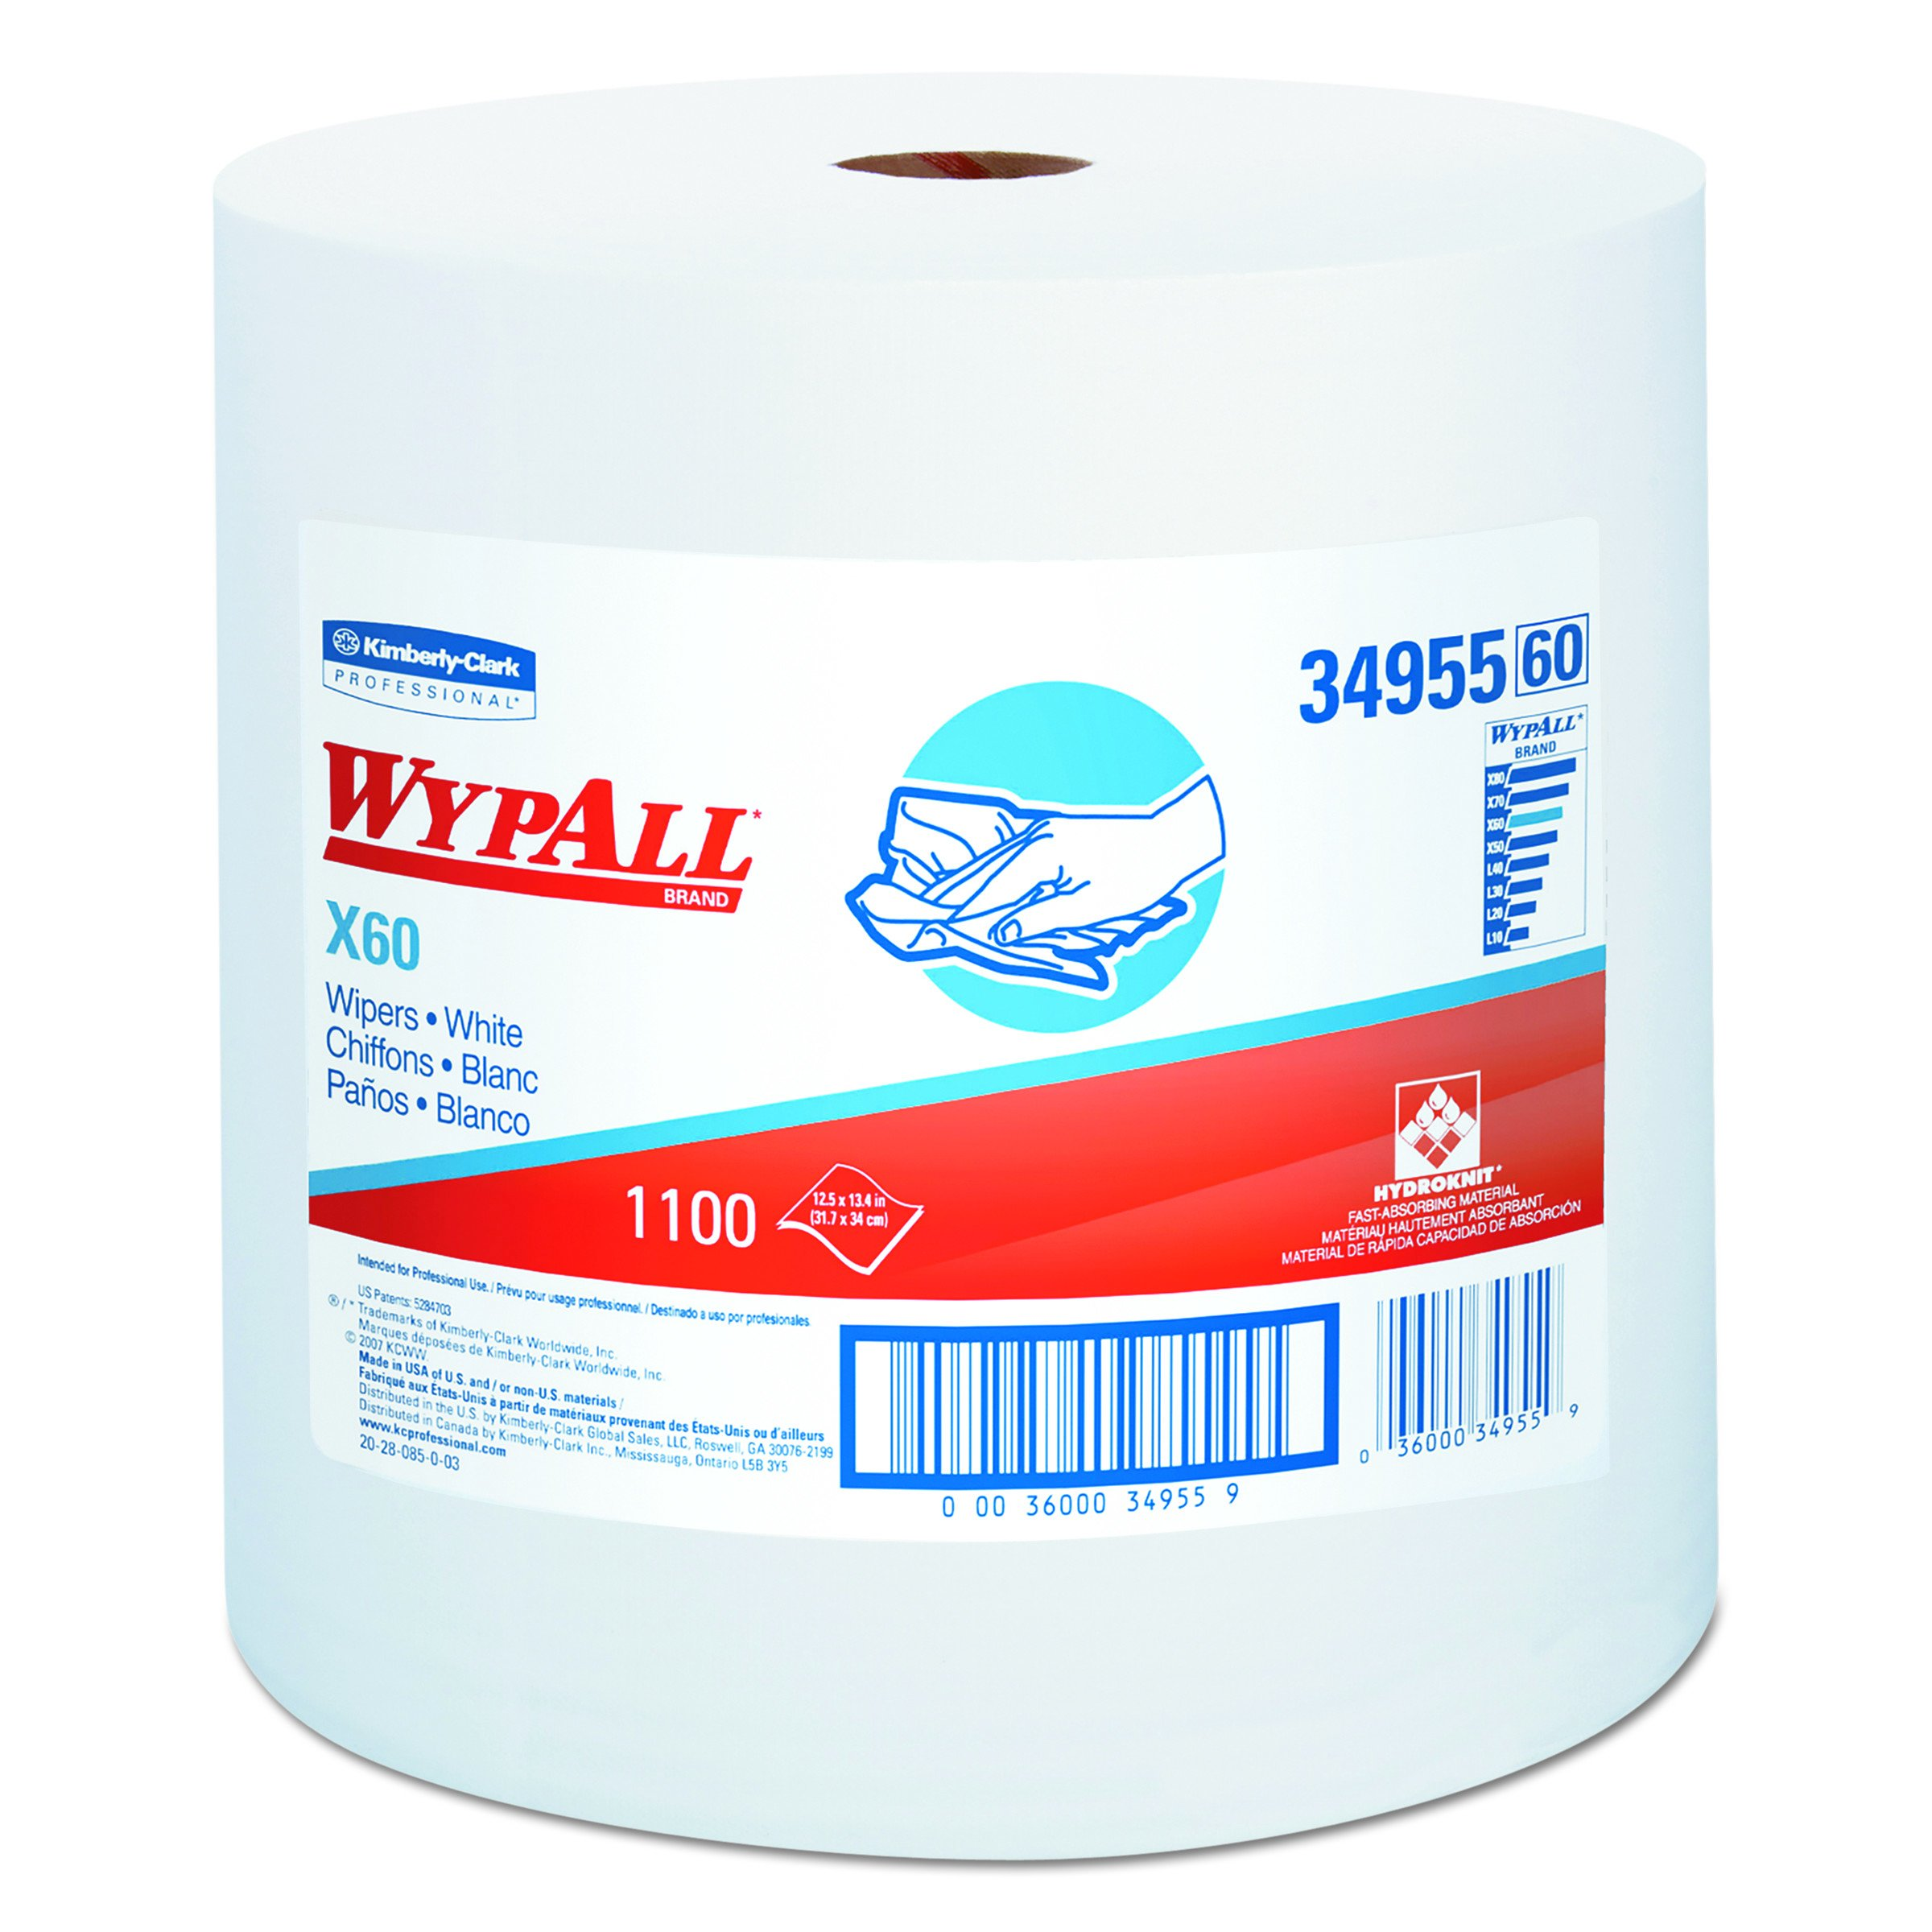 Wypall 34955 X60 Wipers on Jumbo Roll, 12.5'' Length x 13.4'' Width, White (Roll of 1100)